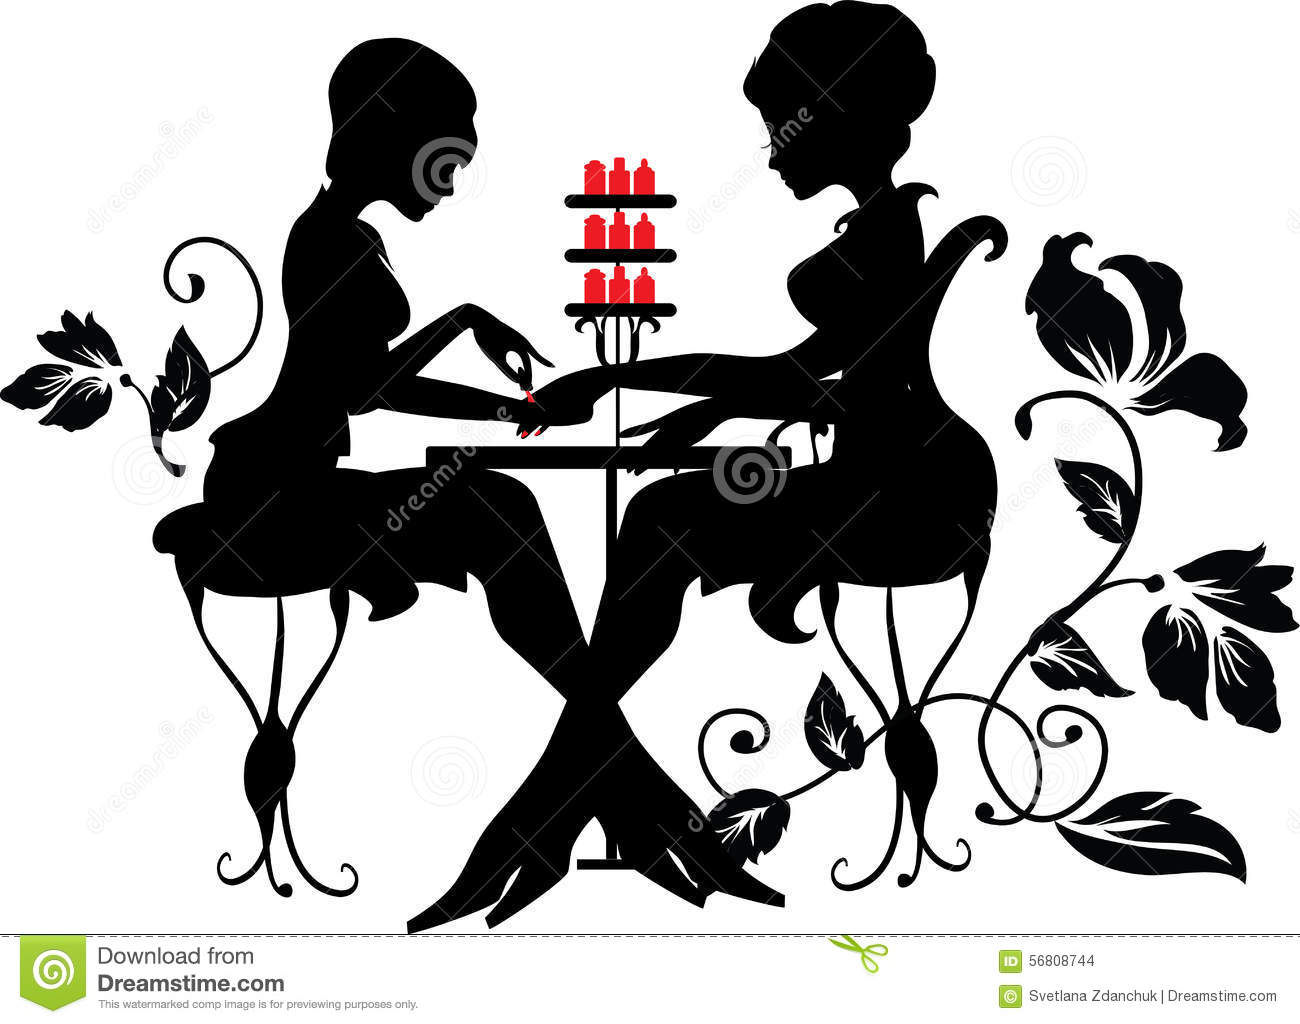 Black Floral Wallpaper Two Silhouettes Of Woman In Manicure Process Stock Vector